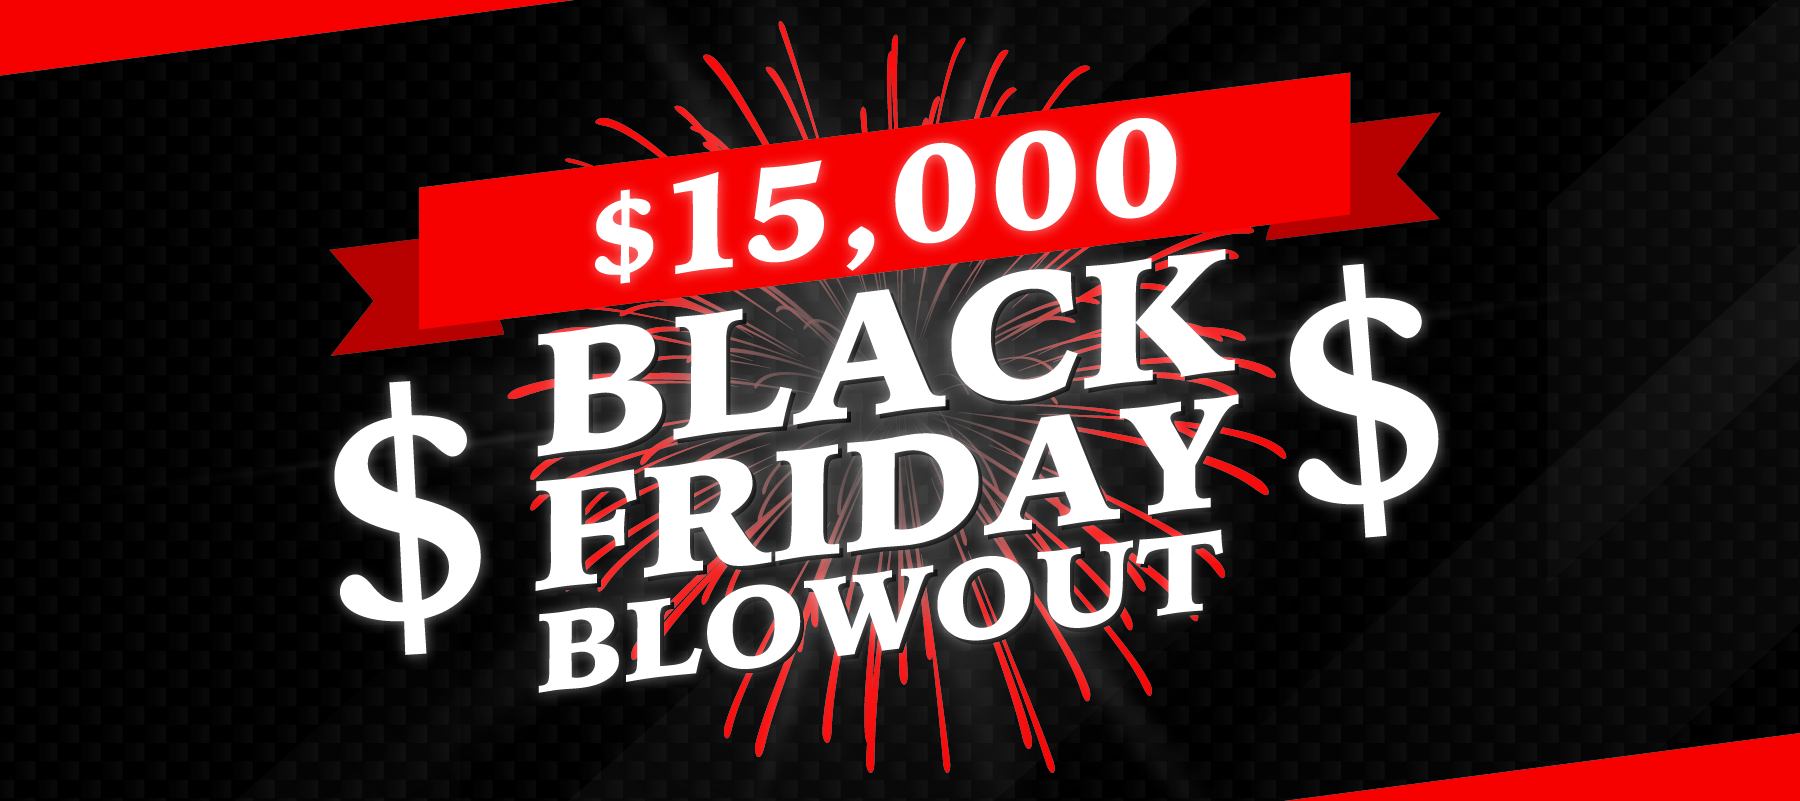 $15,000 Black Friday Blowout